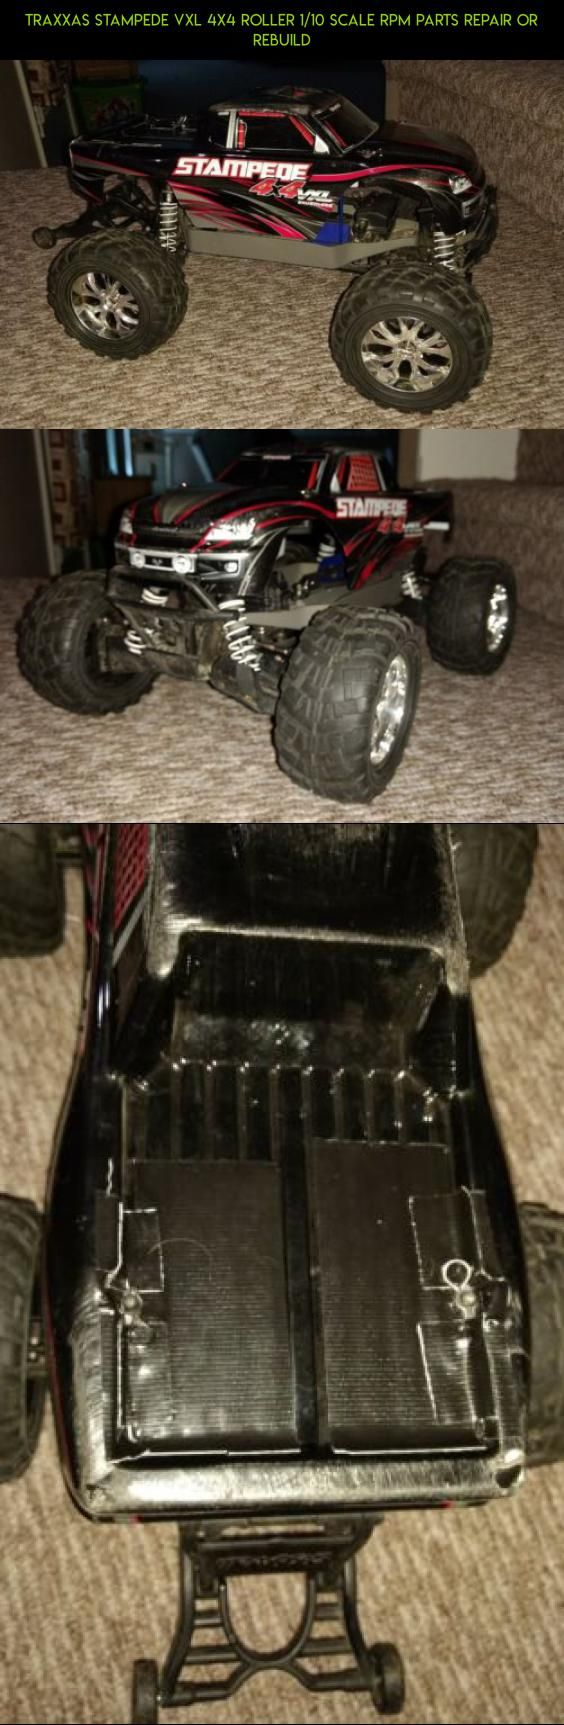 Traxxas Stampede VXL 4x4 Roller 1/10 scale RPM parts repair or rebuild #traxxas #stampede #technology #parts #parts #fpv #shopping #tech #gadgets #plans #kit #racing #products #camera #drone